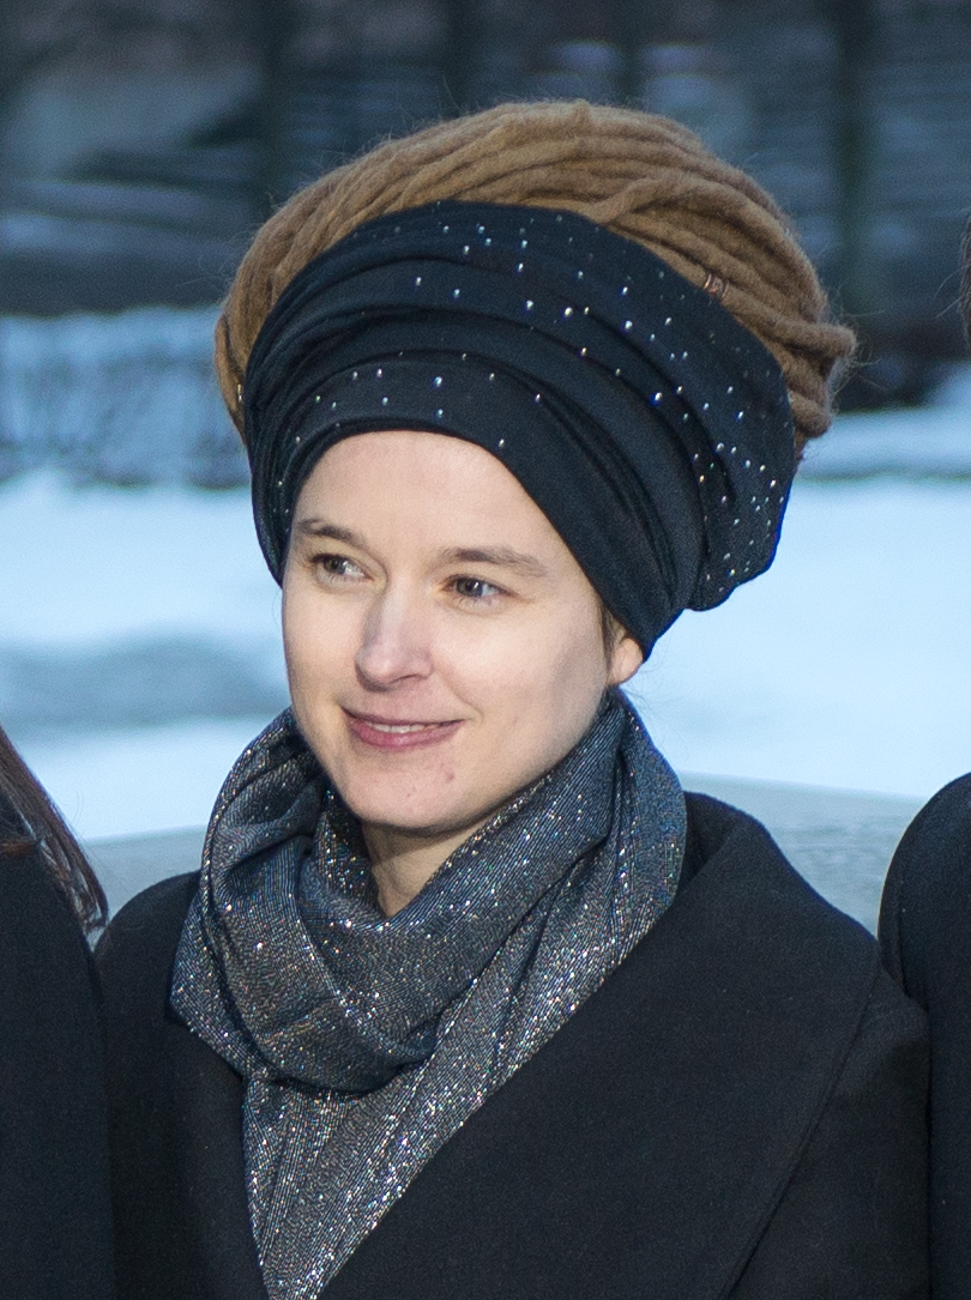 Amanda Lind file:amanda lind in 2019 - wikimedia commons